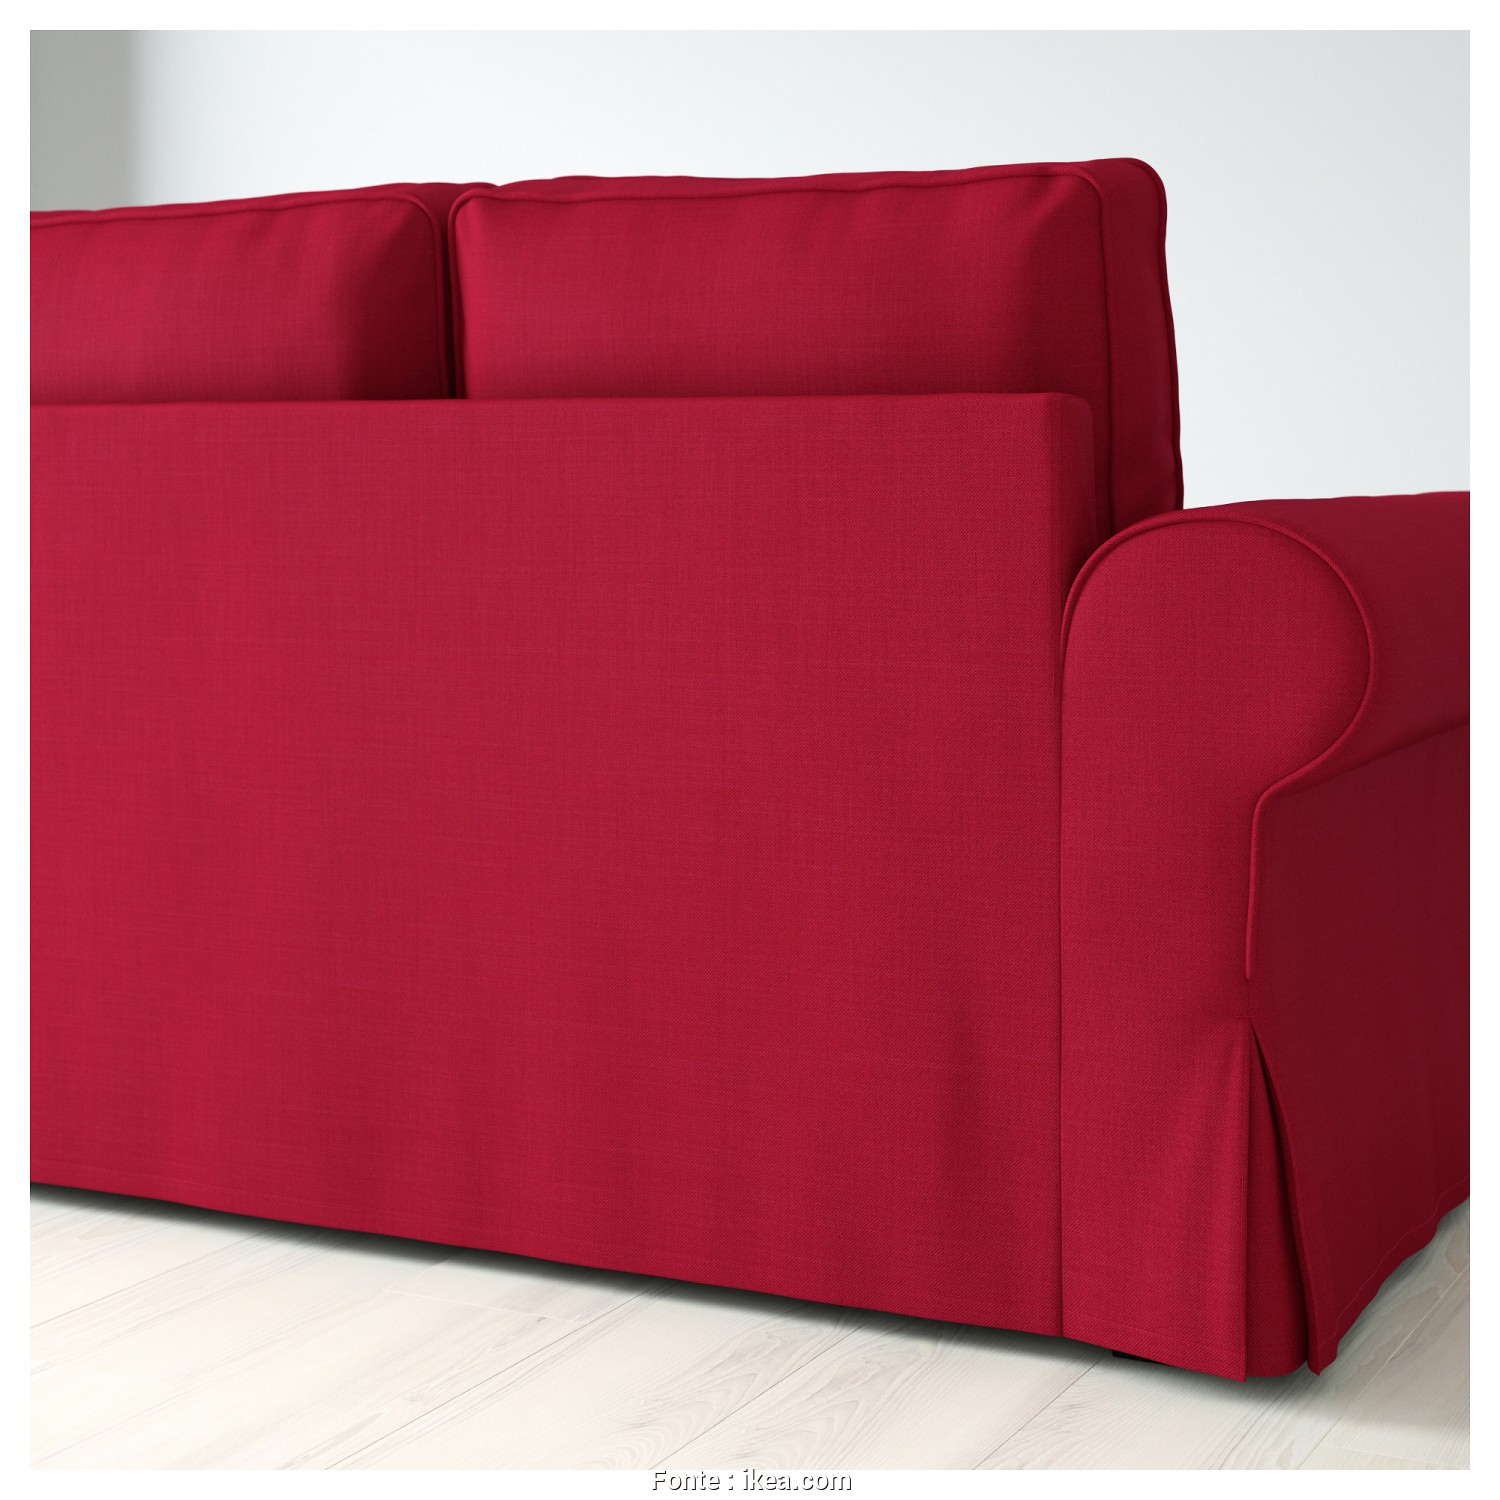 Ikea Backabro Kılıf, Elegante BACKABRO Sofa, With Chaise Longue Nordvalla Red